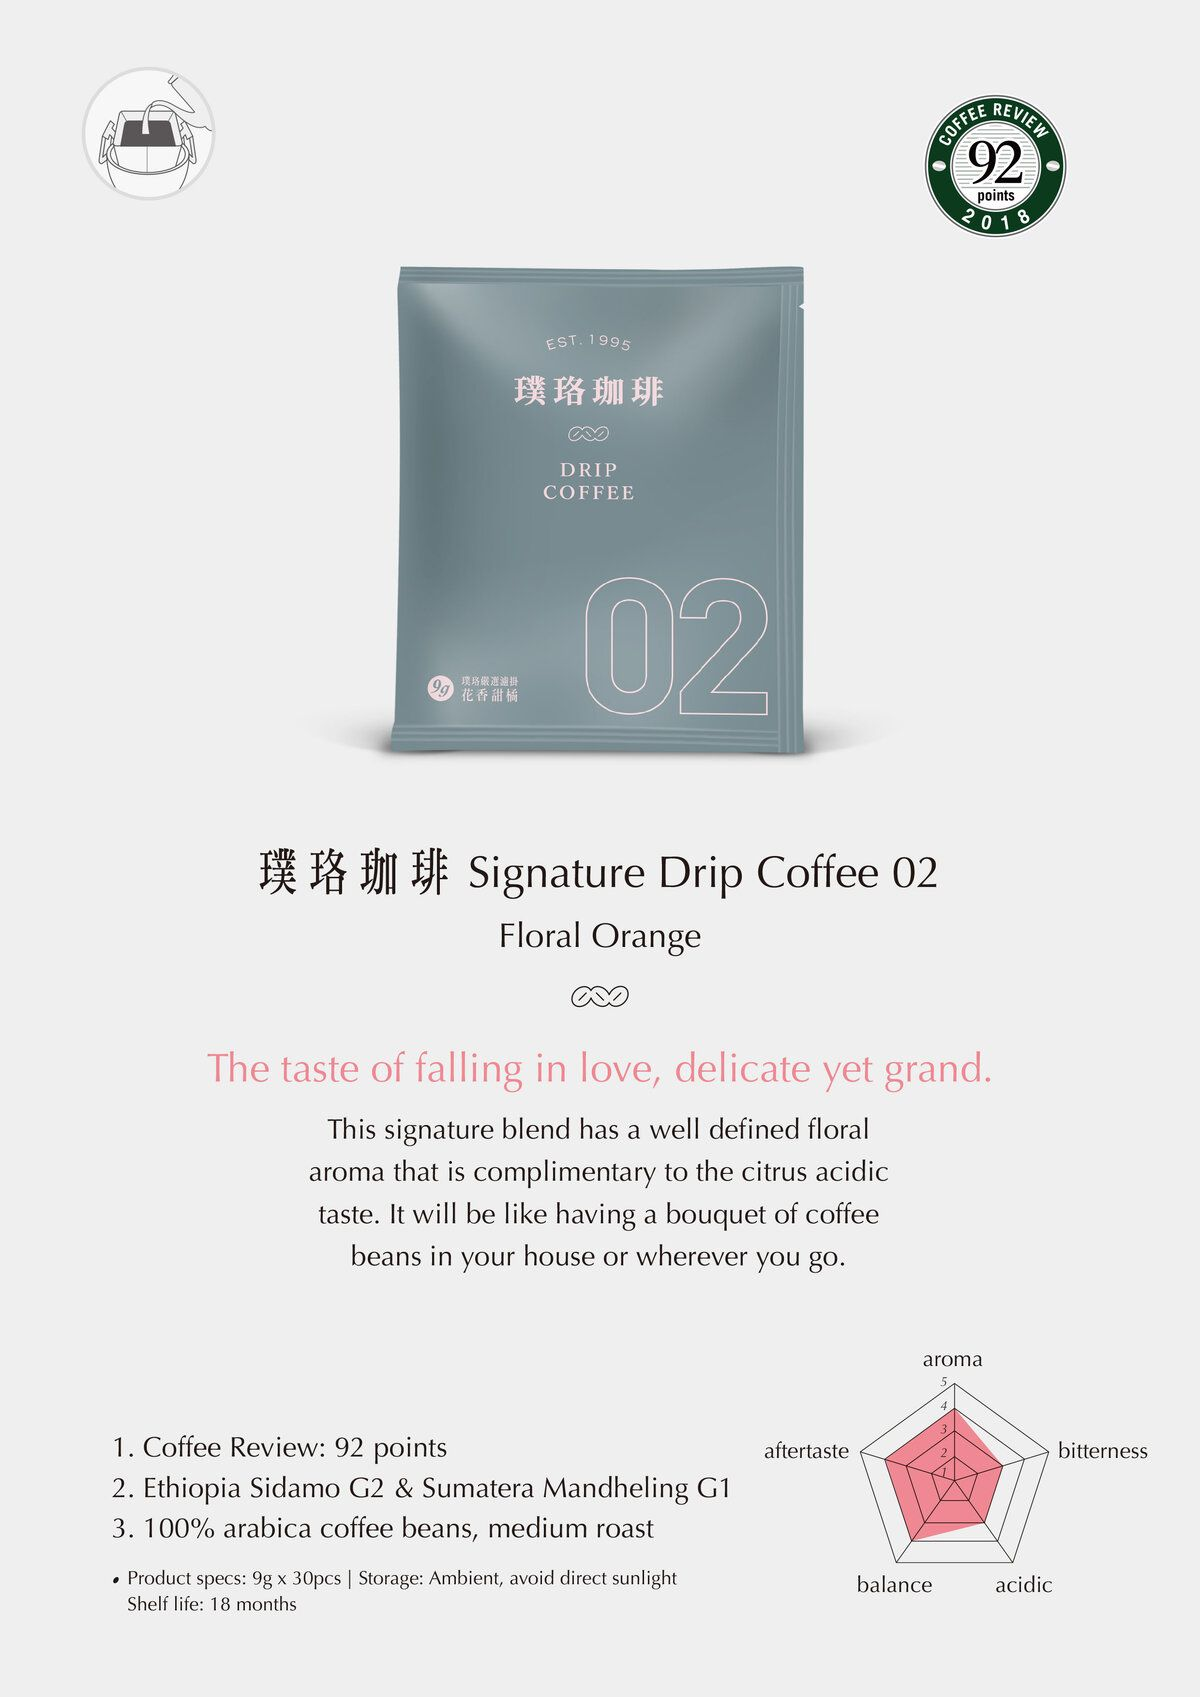 more information about drip coffee signature 02